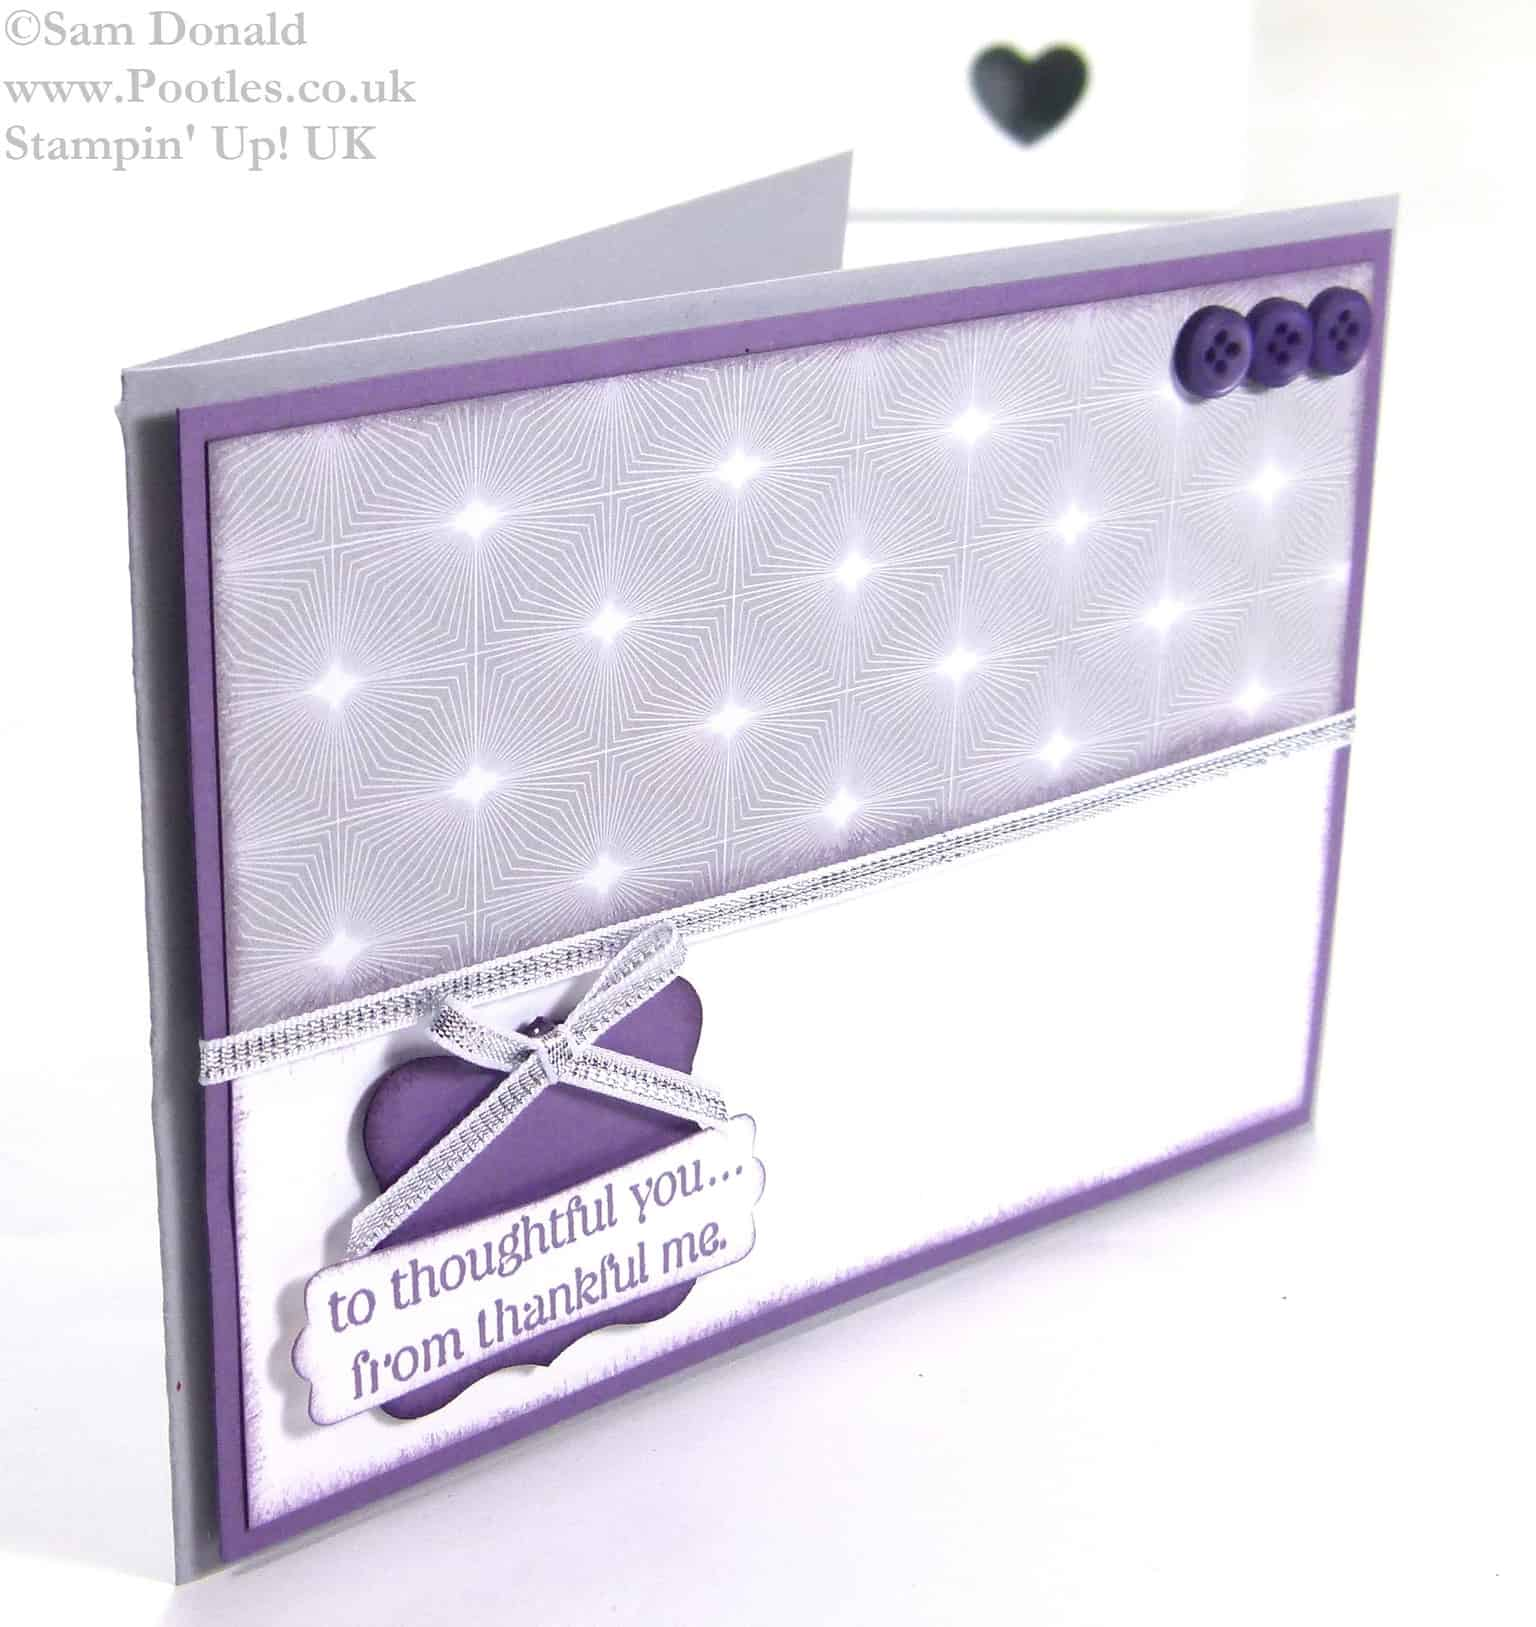 POOTLES Stampin Up UK A Thoughtful Perfect Thank You